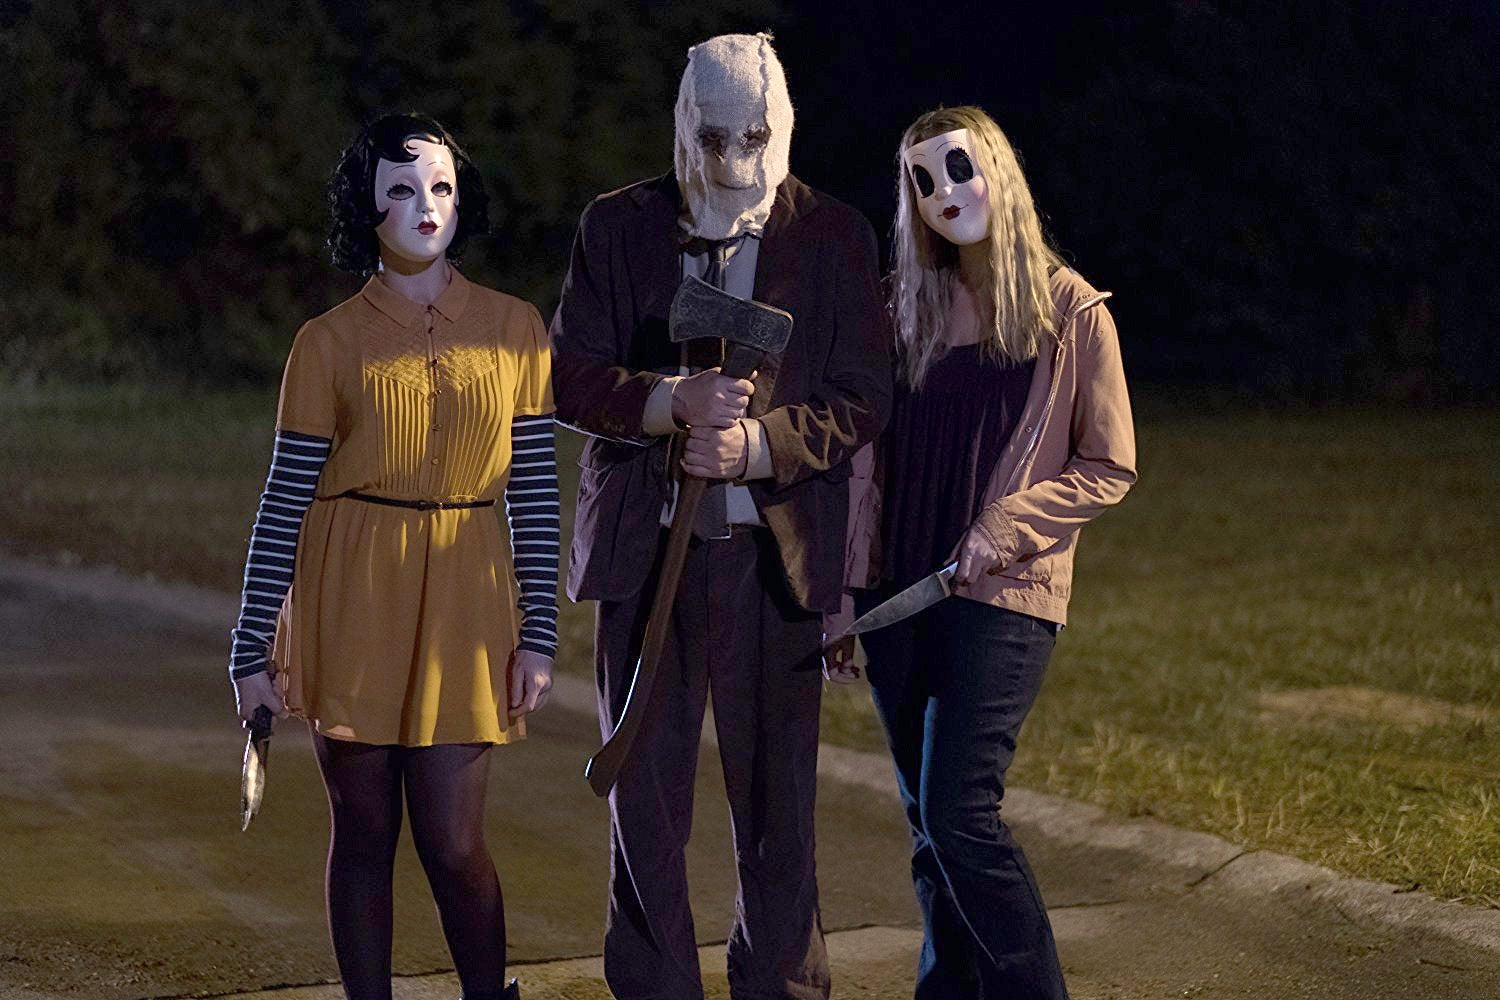 The Strangers: Prey at Night.